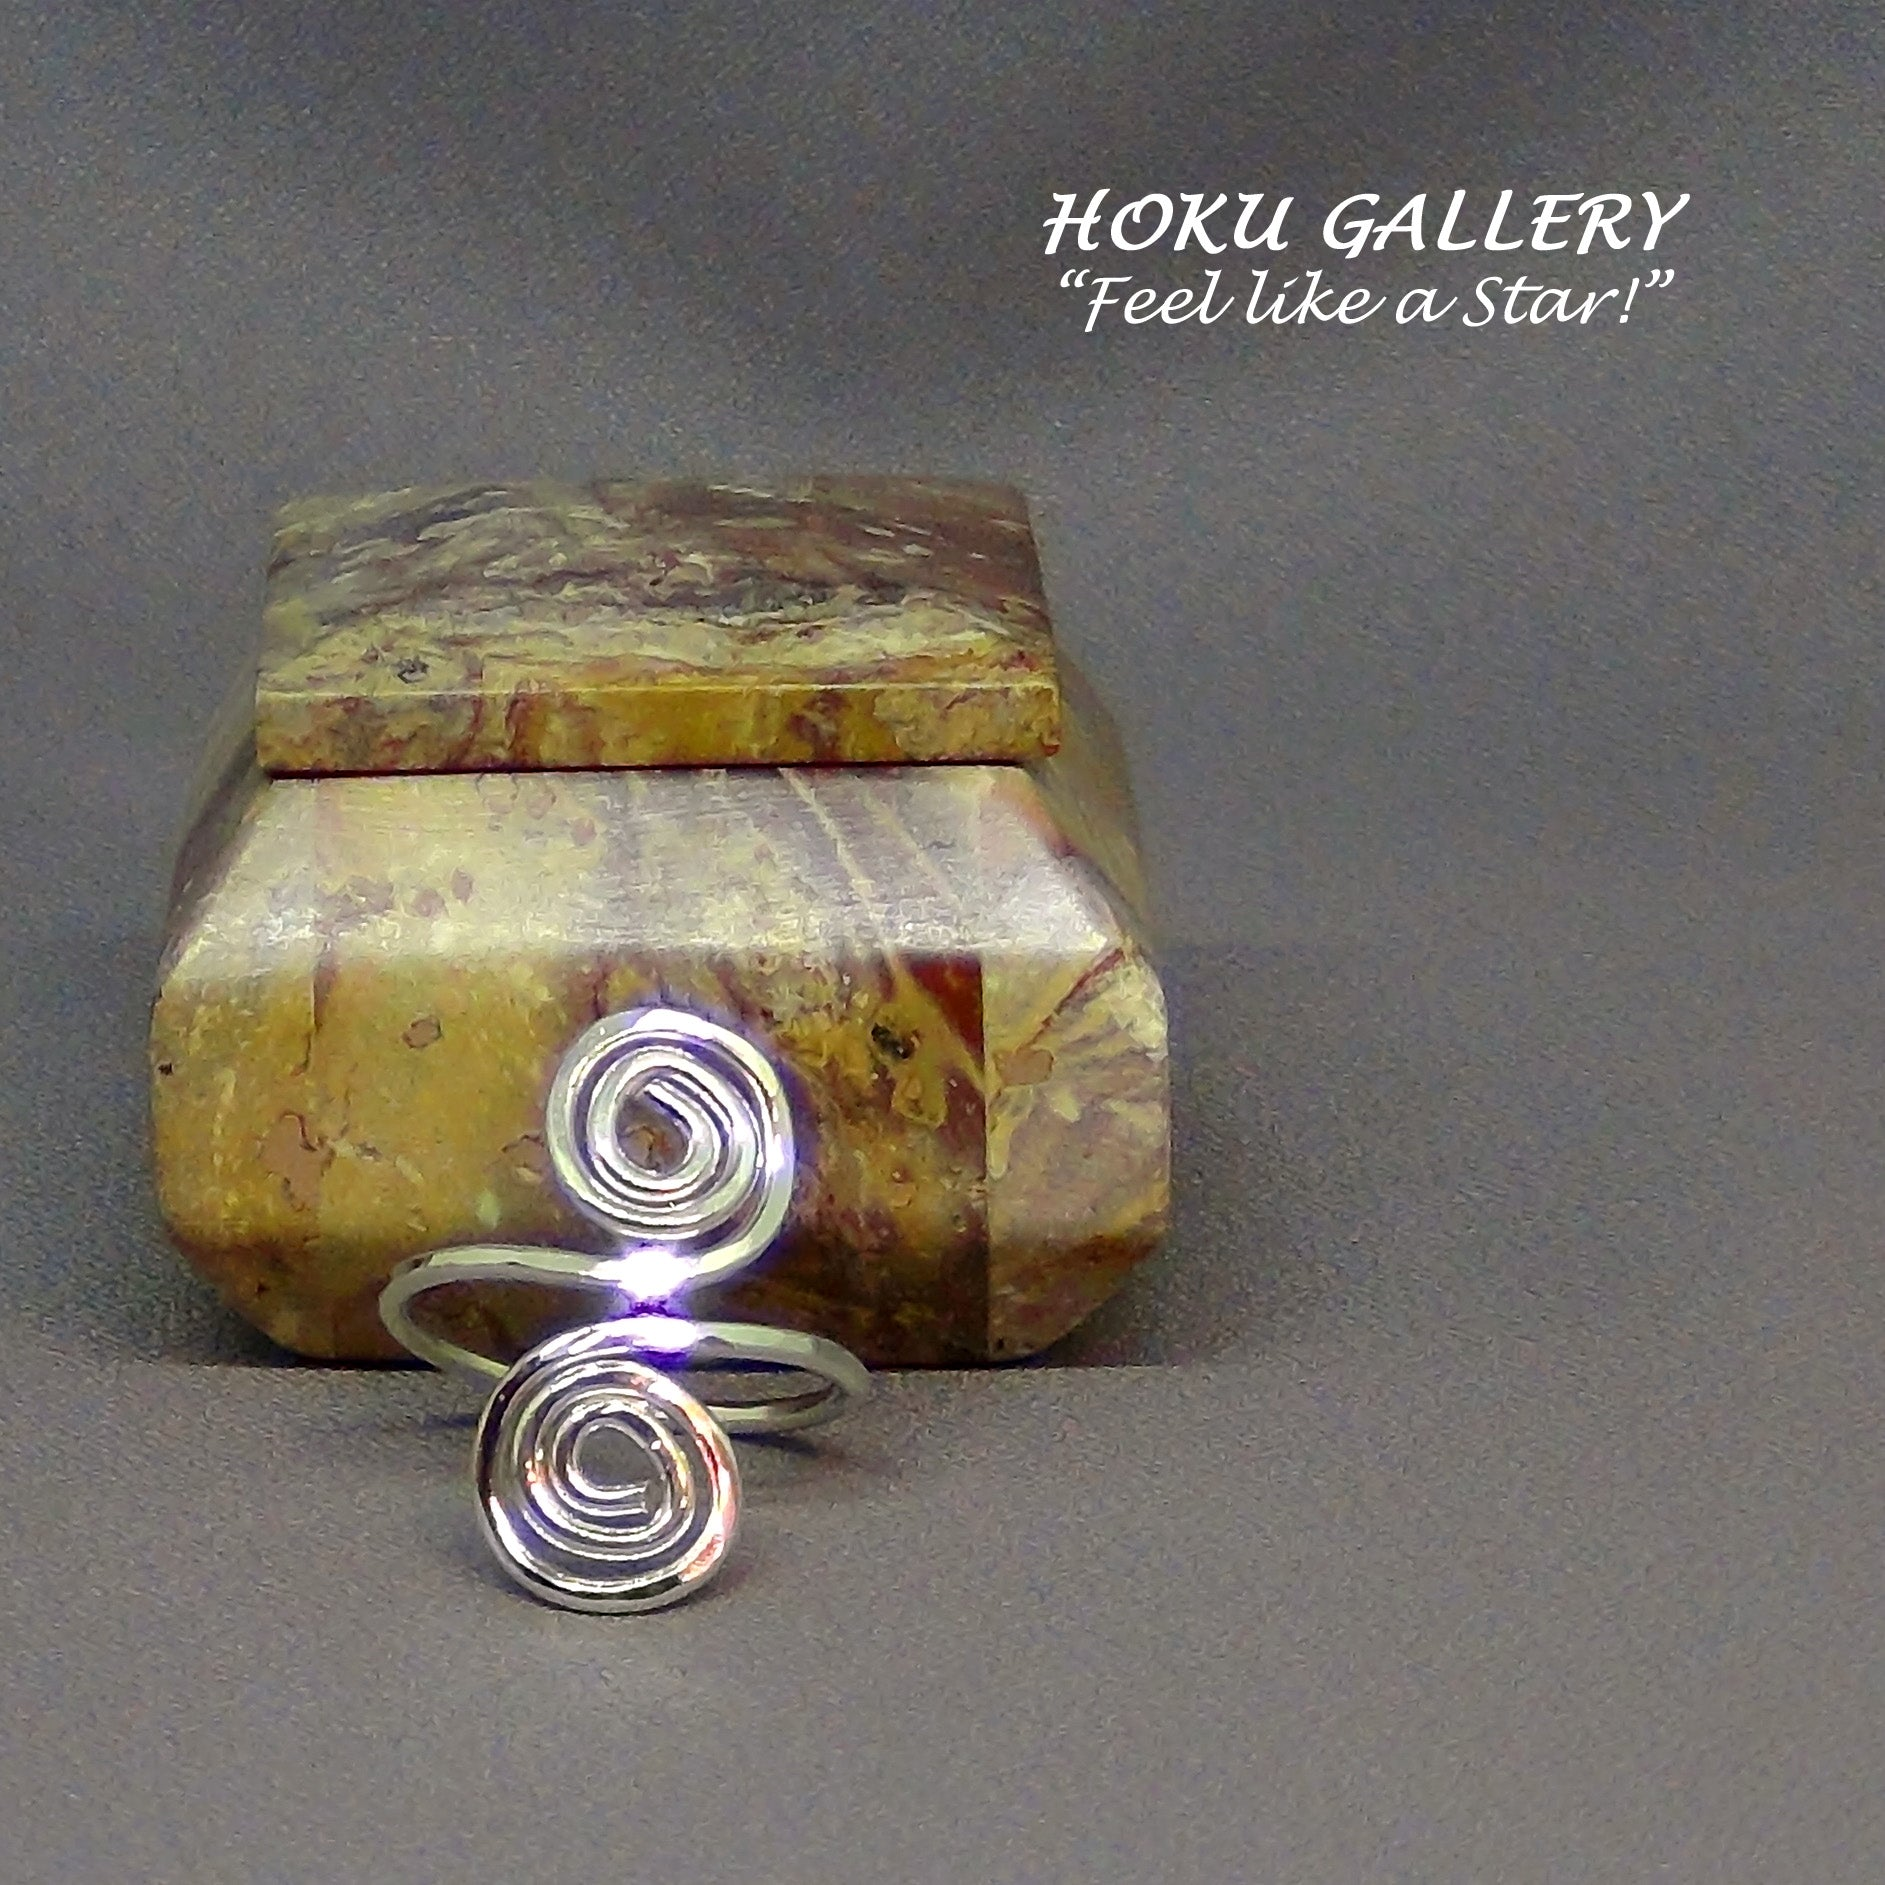 Wire wrapped, Adjustable, Double Swirl Ring by Hoku Gallery